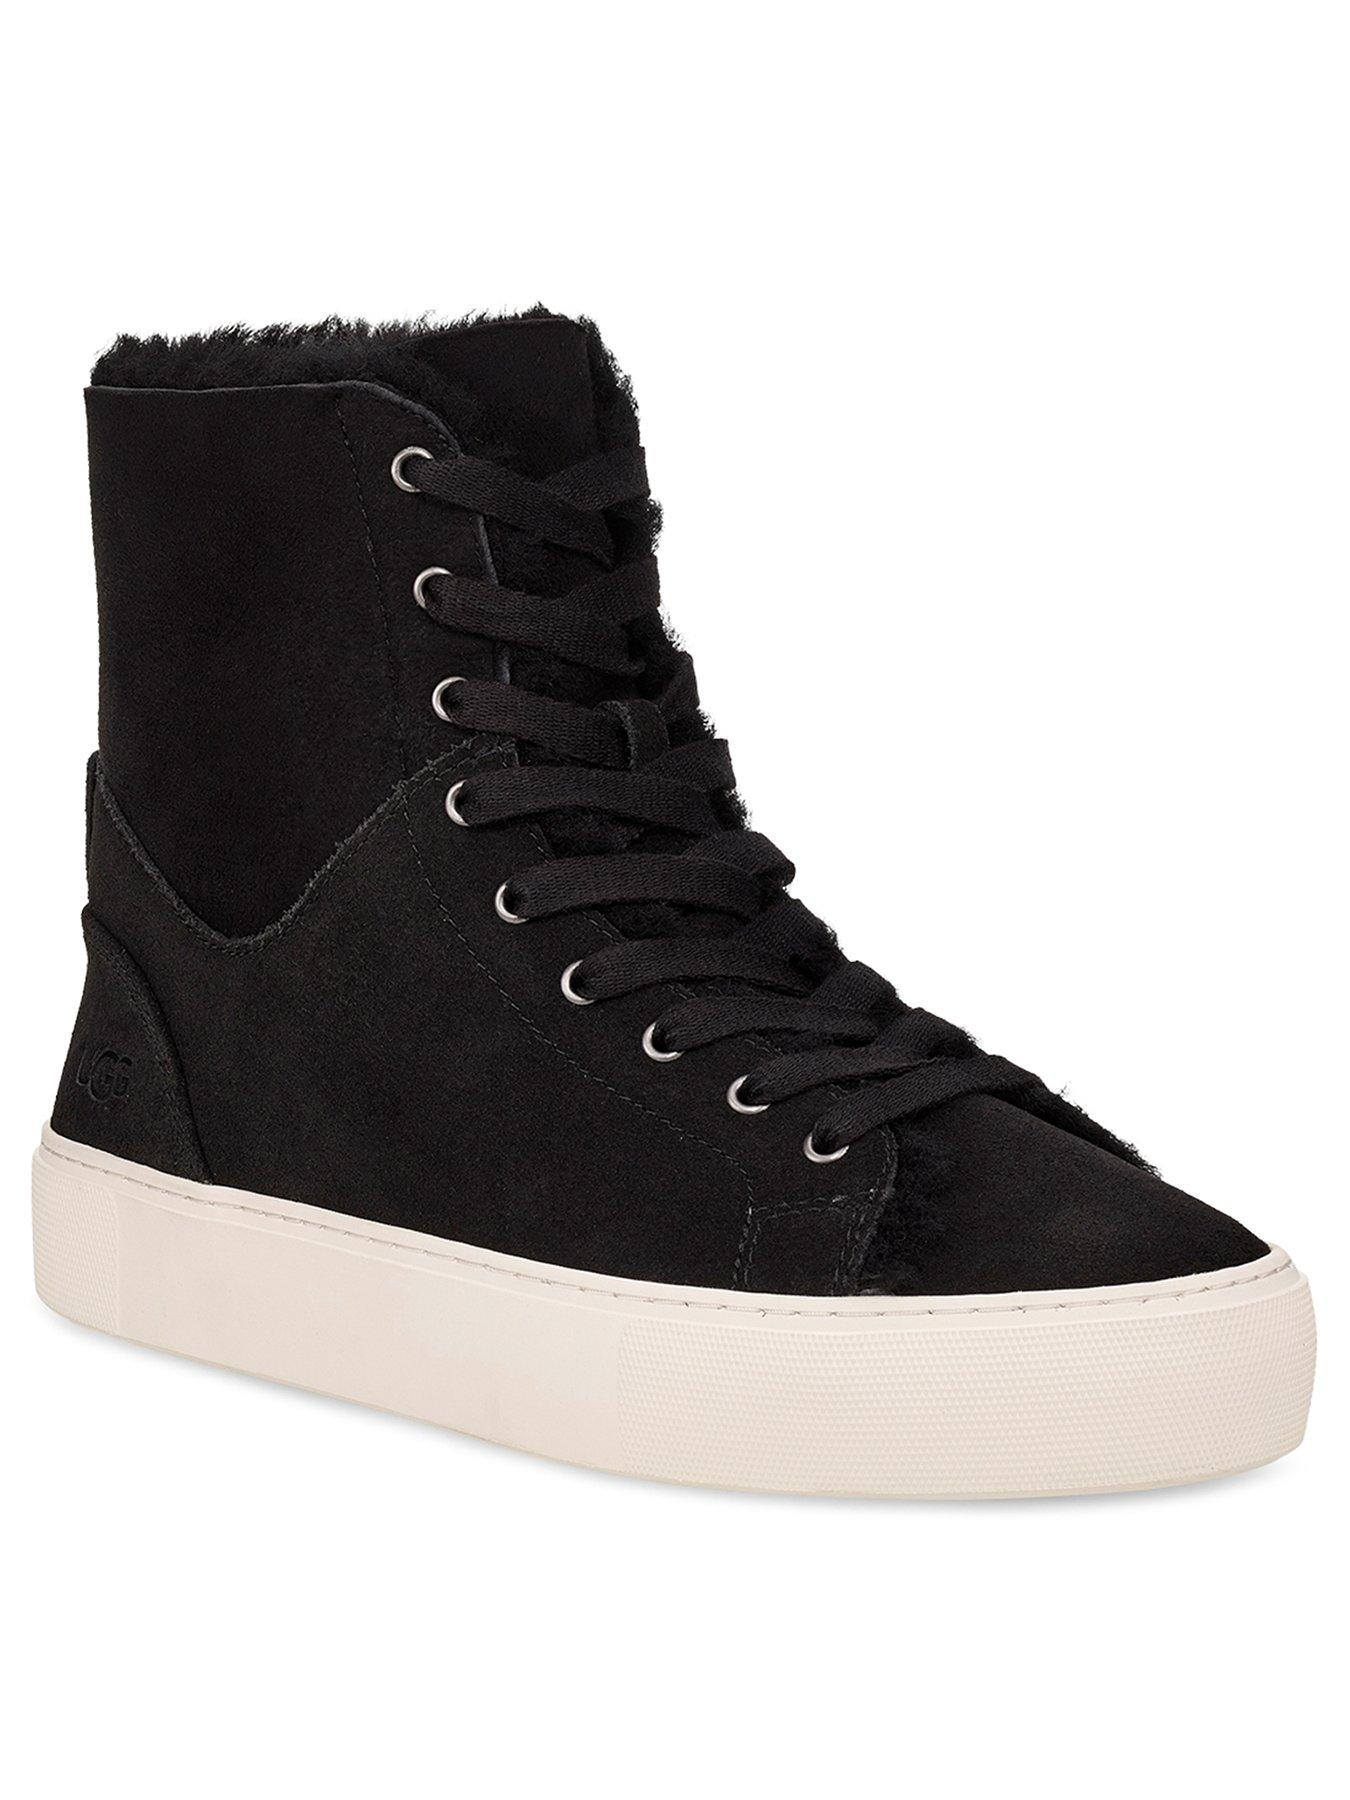 Womens UGG Boots | UGG Boots for Women